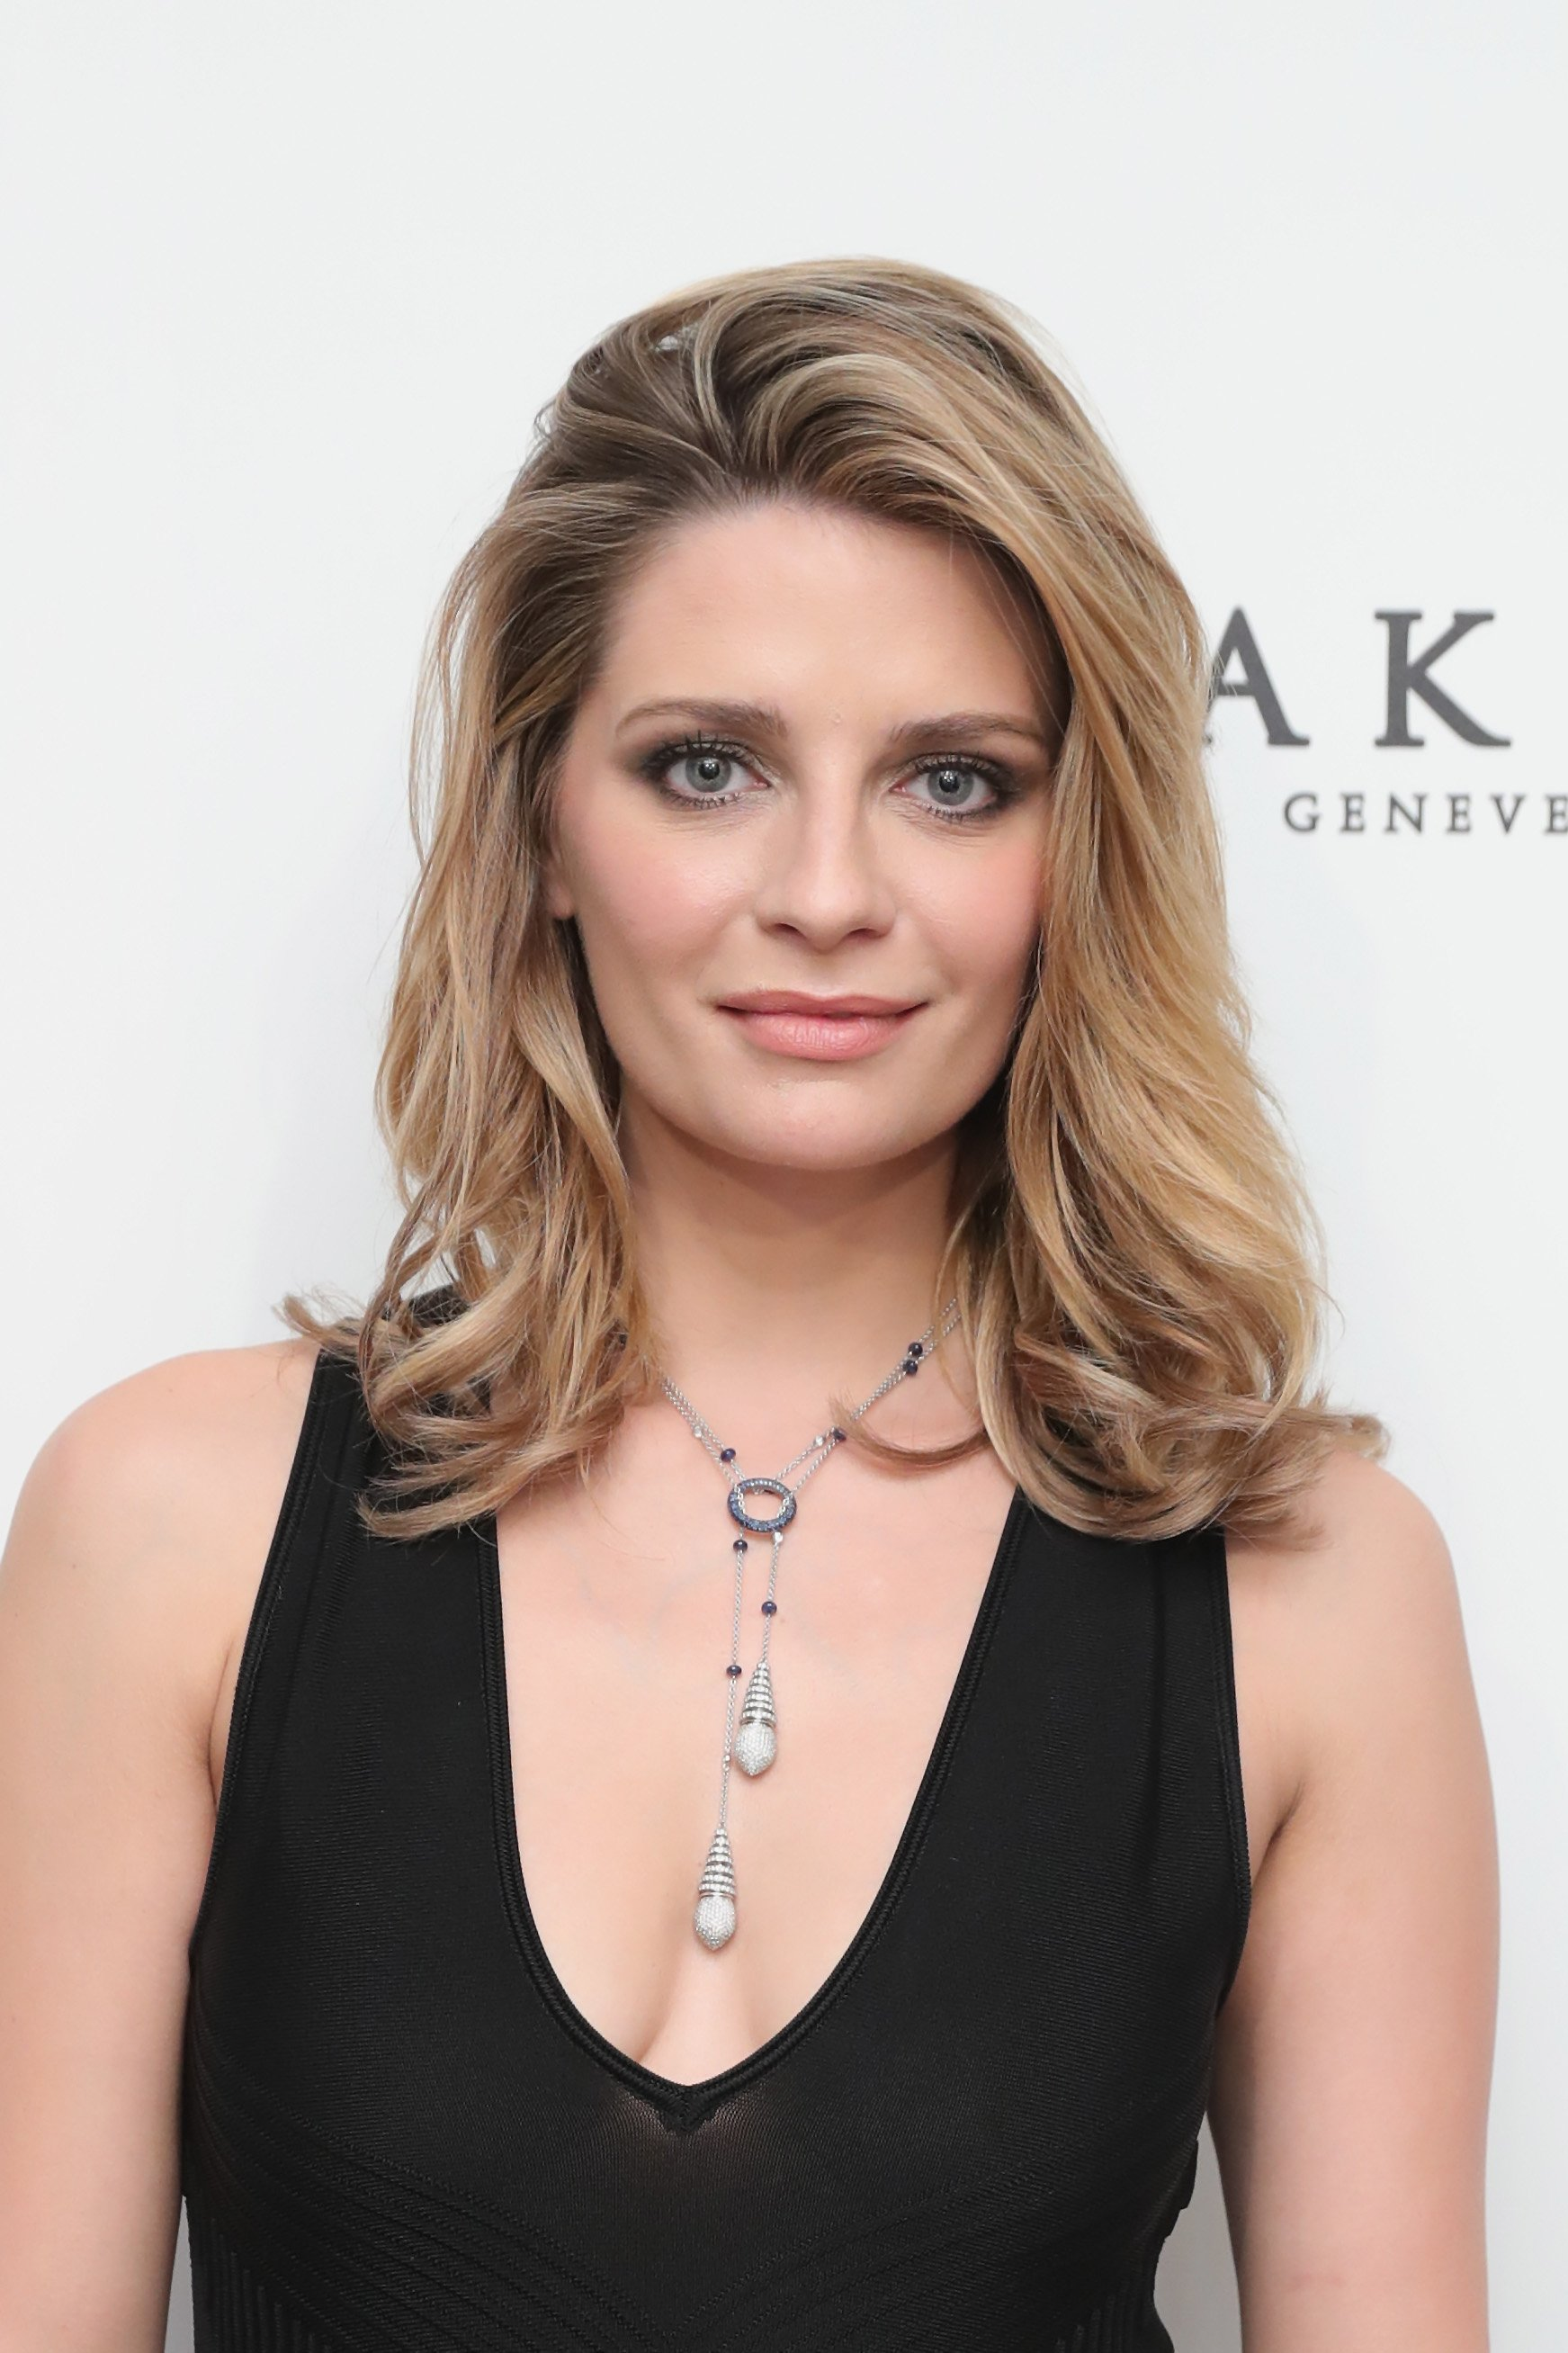 Mischa Barton visits the Avakian Suite during The 69th Cannes Film Festival on May 15, 2016 in Cannes